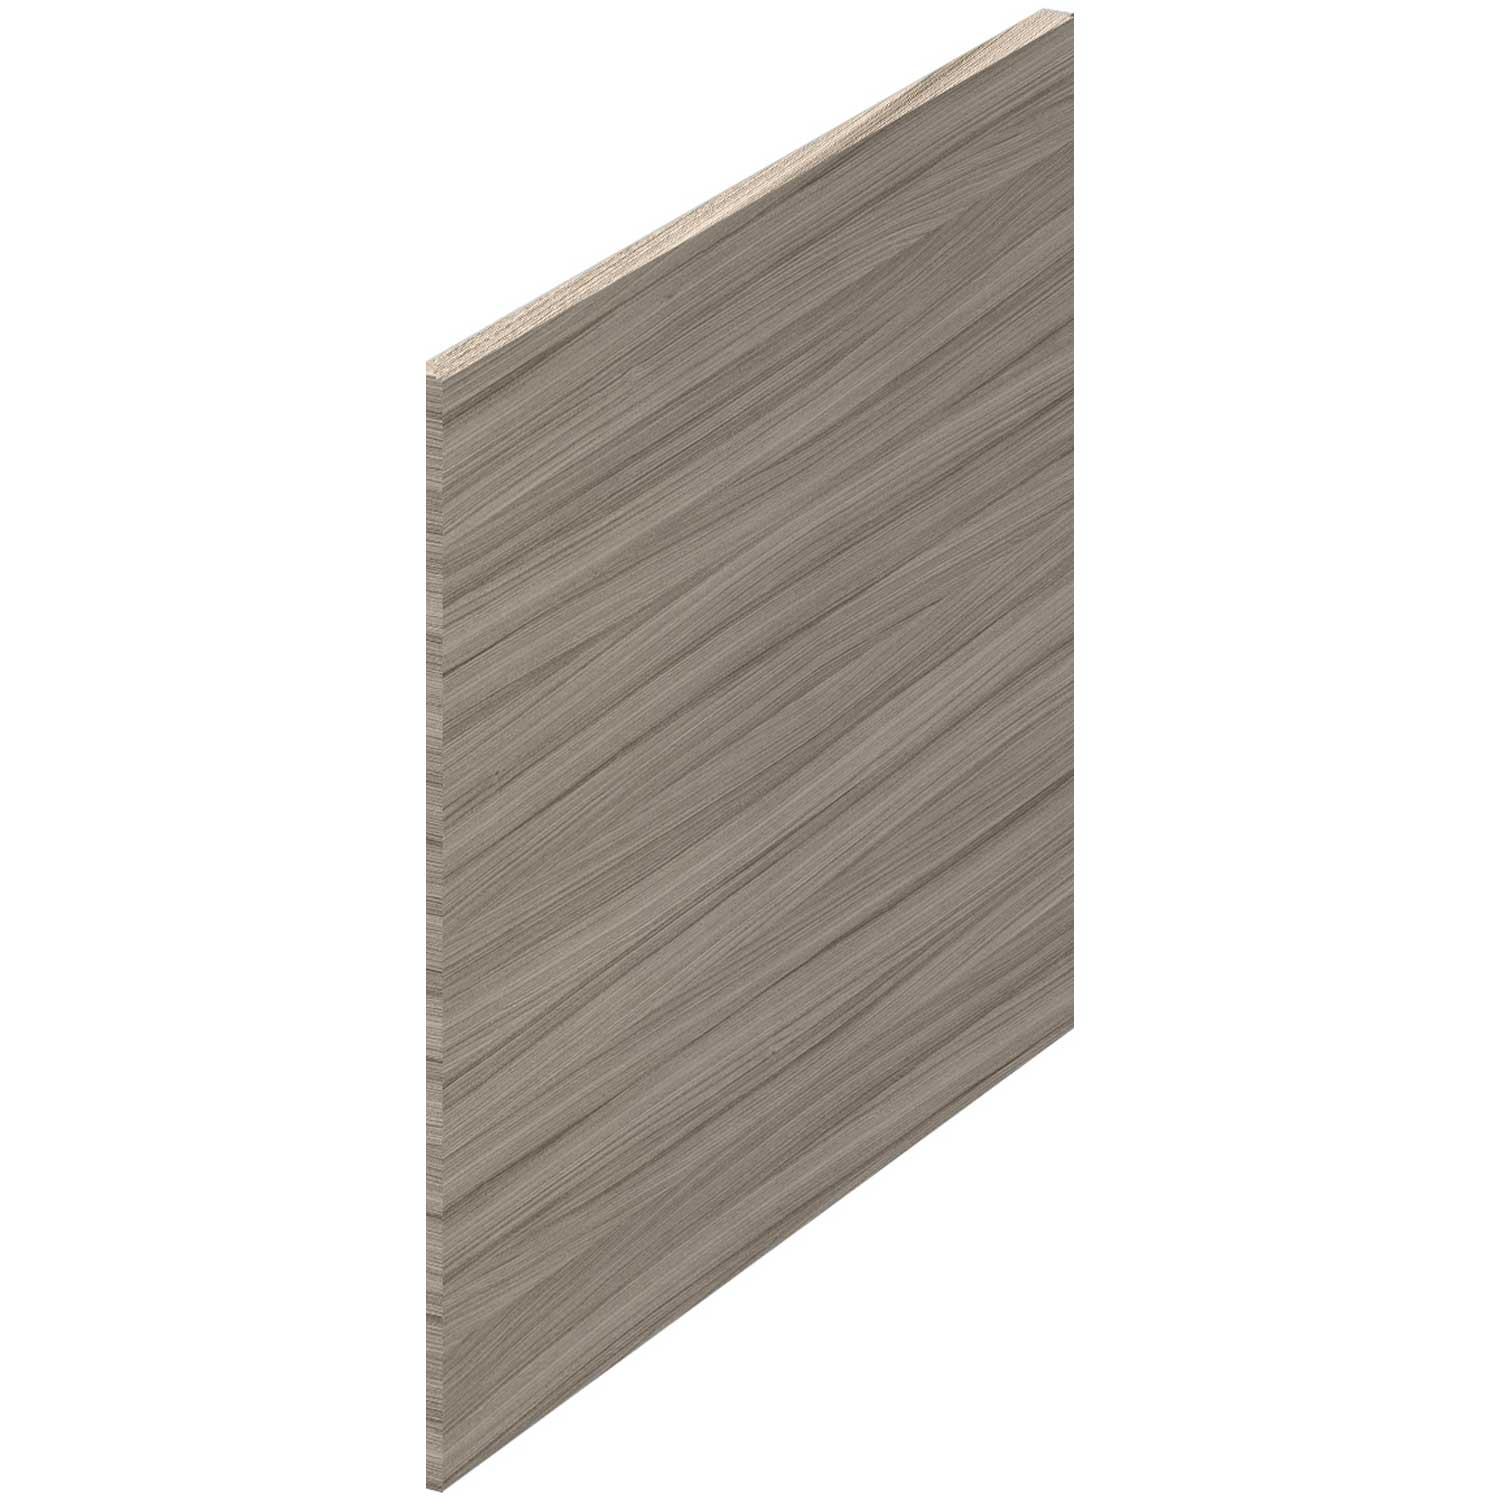 Hudson Reed MFC Shower Bath End Panel 520mm H x 700mm W - Driftwood